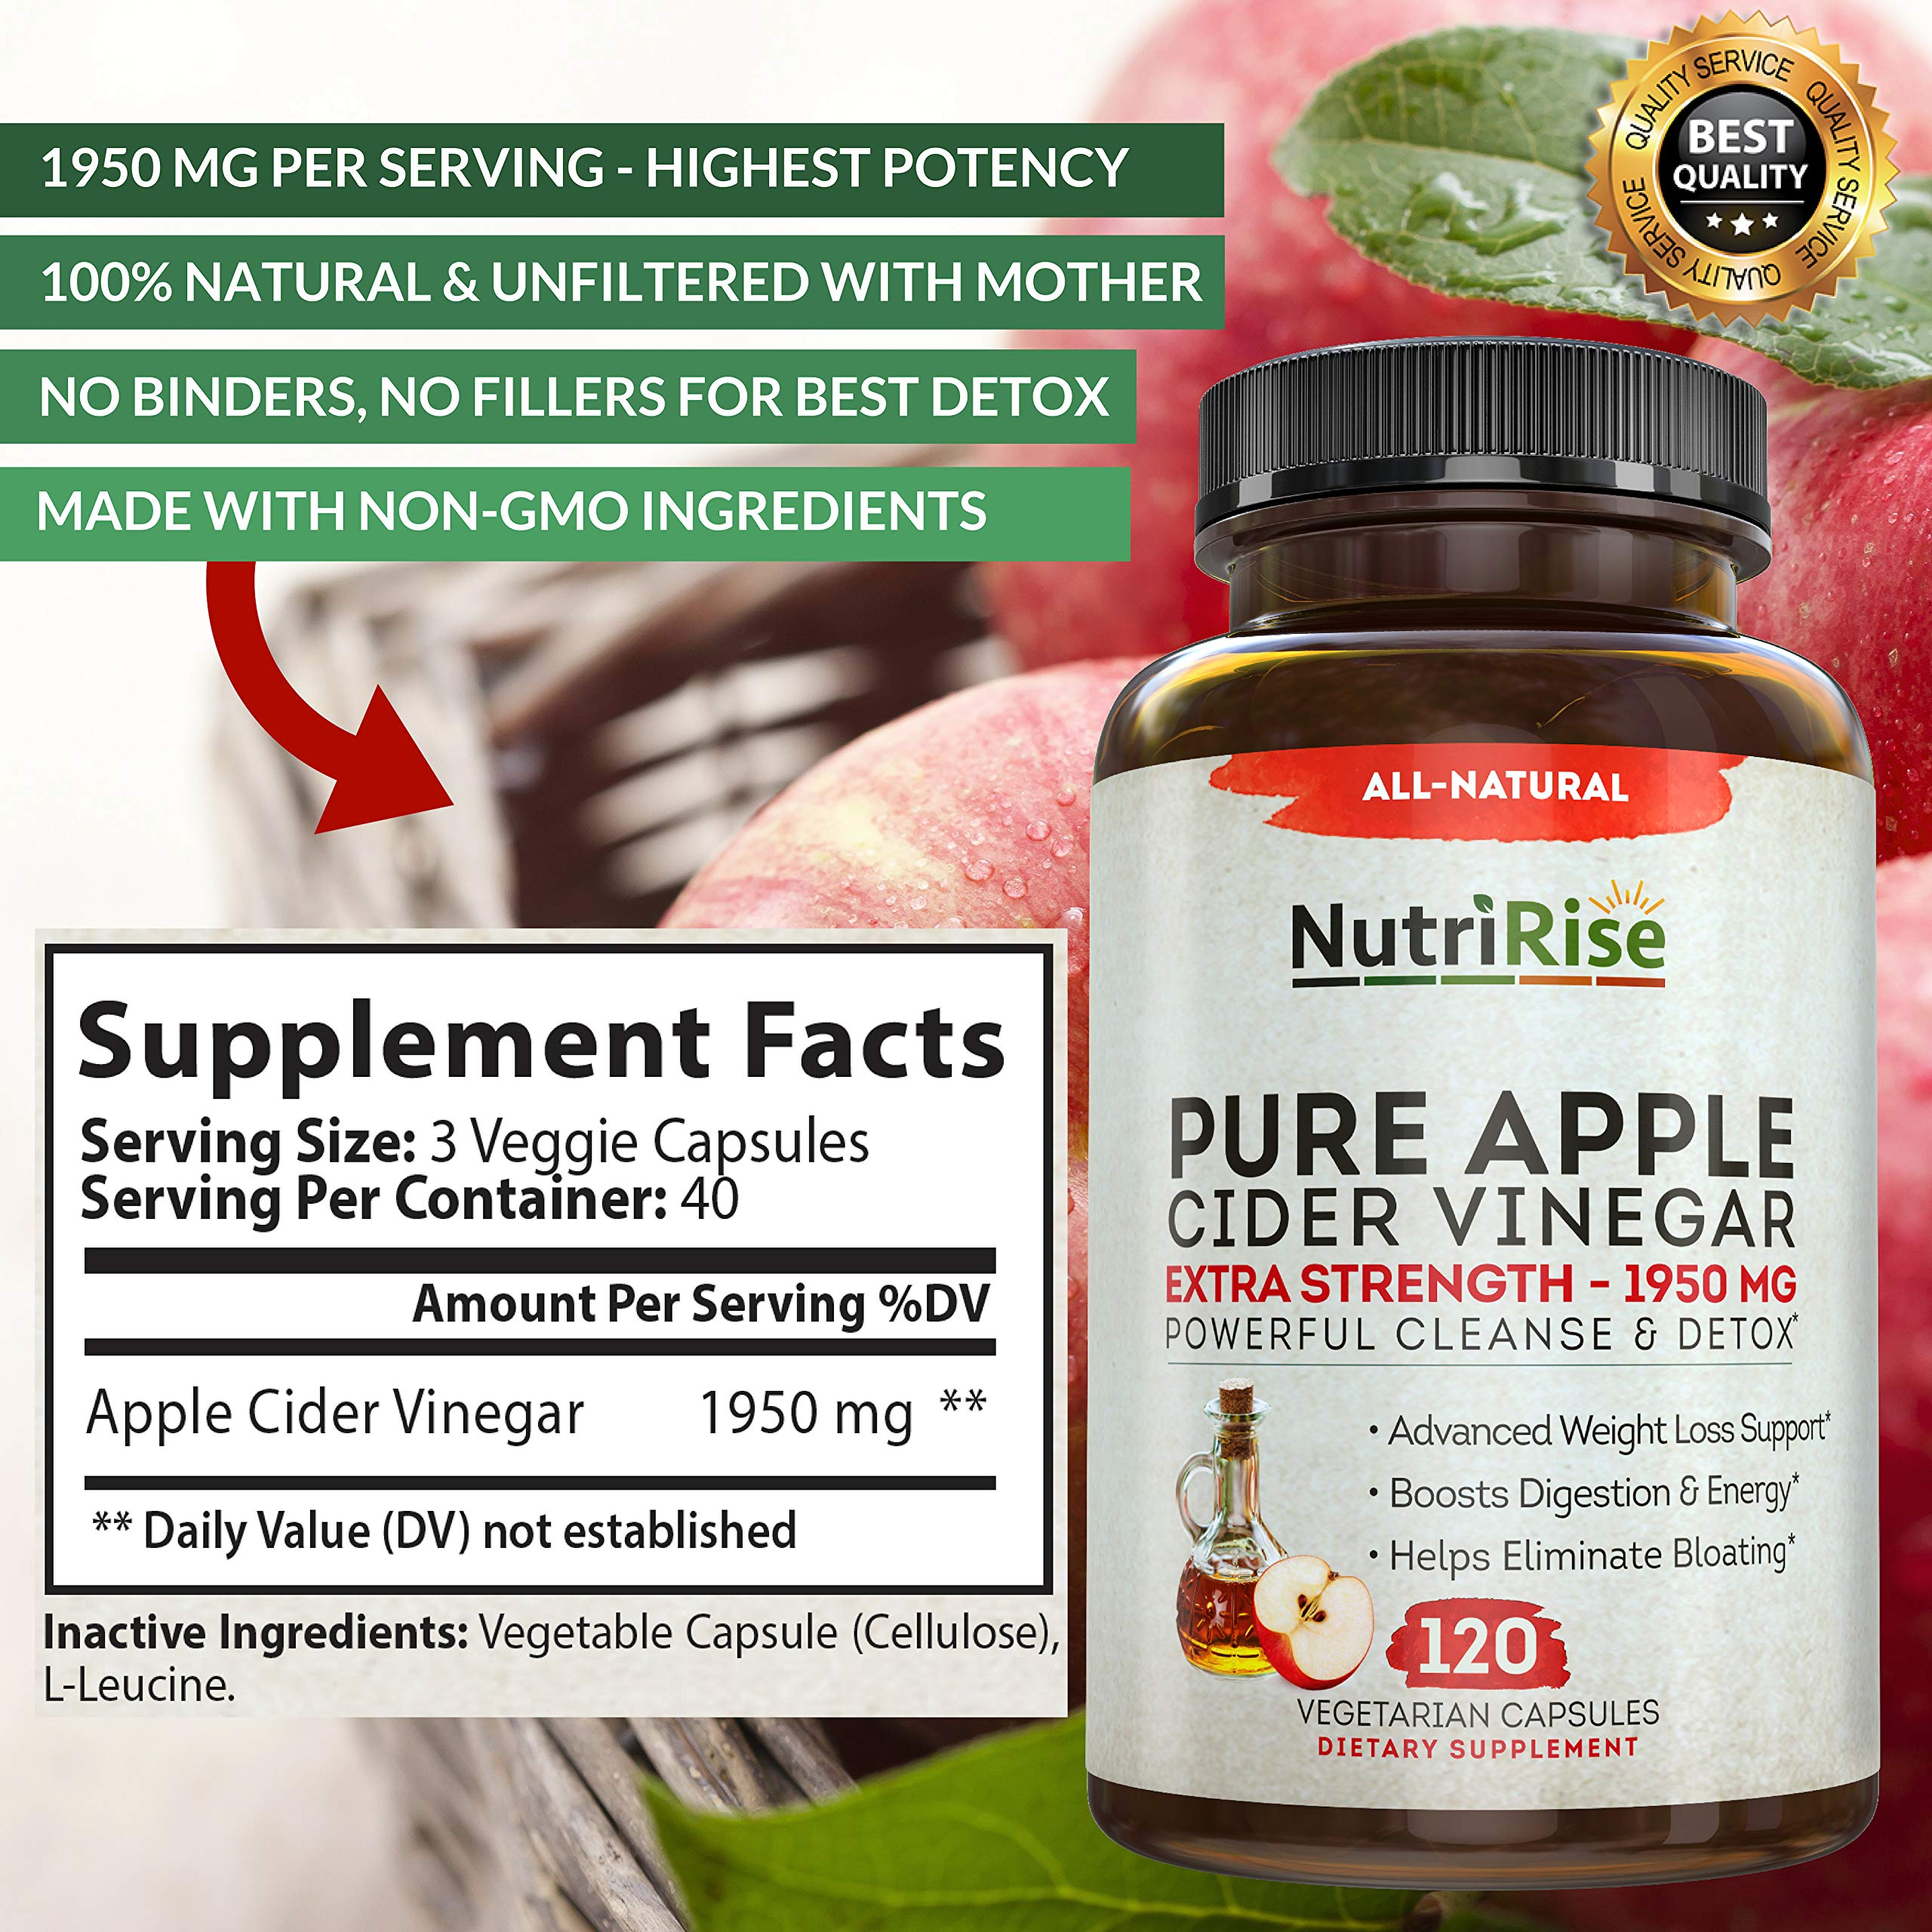 Apple Cider Vinegar Capsules for Weight Loss & Cleanse - 100% Pure Extra Strength 1950mg - 120 Natural Diet Pills for Women & Men for Bloating & Constipation Relief, Digestion & Energy Boost by NutriRise (Image #2)